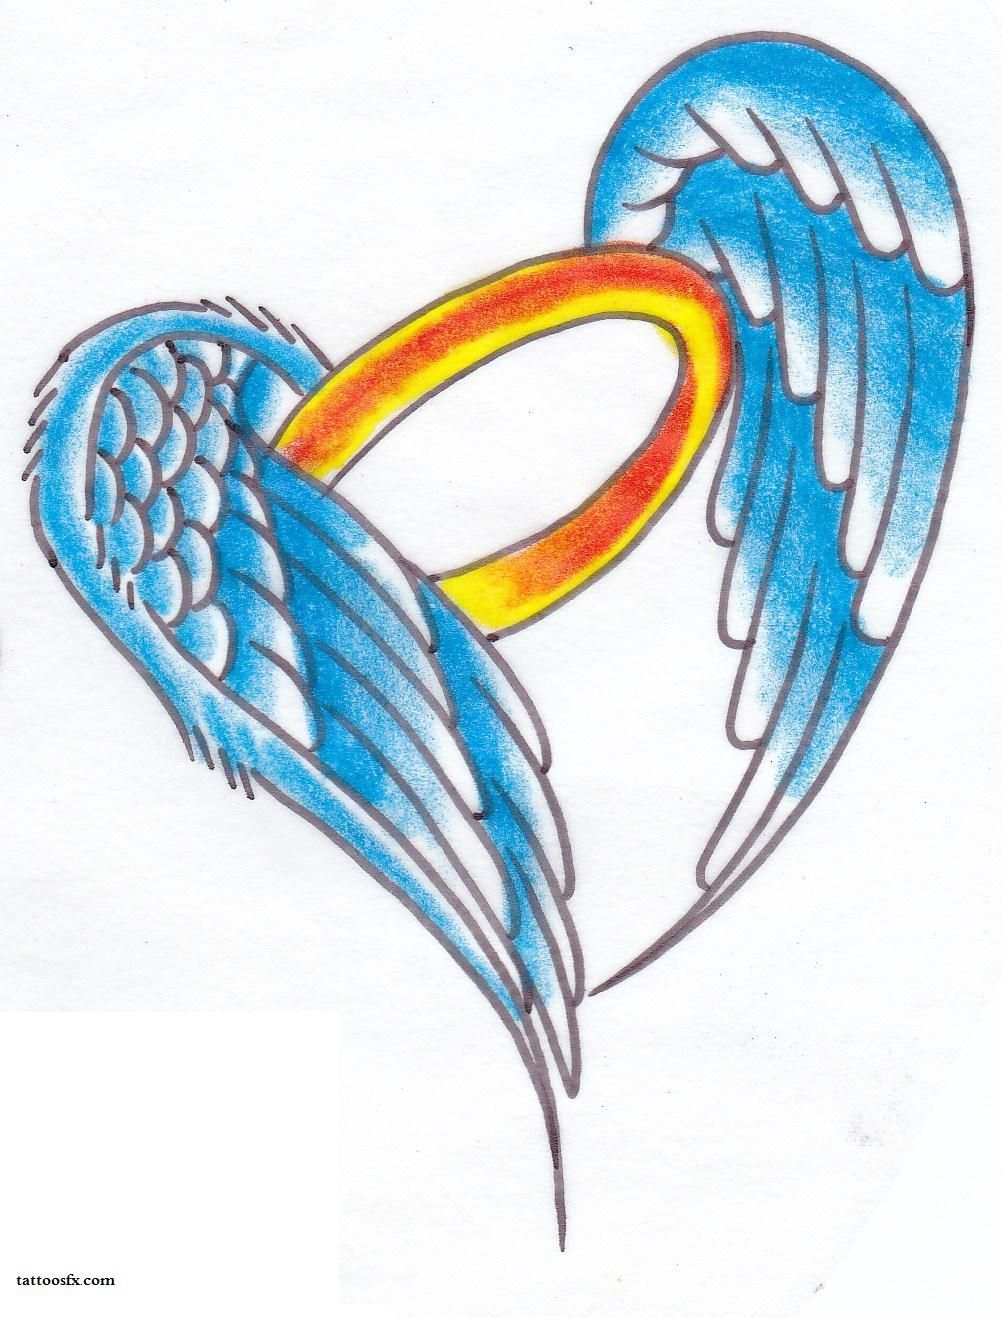 Wings and halo with watercolor clipart tattoo design clipart stock wing with halo tattoo design,wing tattoo,halo tattoo design ... clipart stock